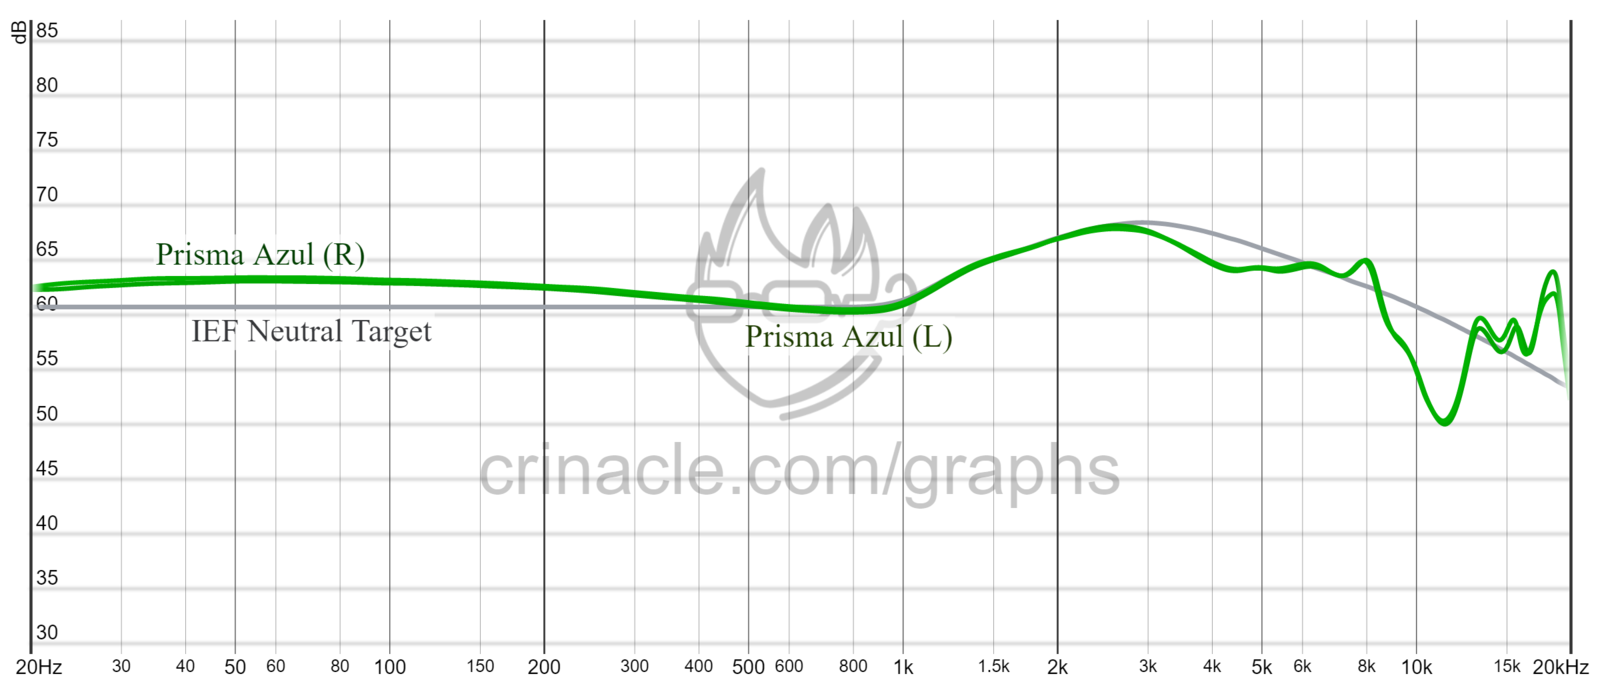 graph_3_1600x.png